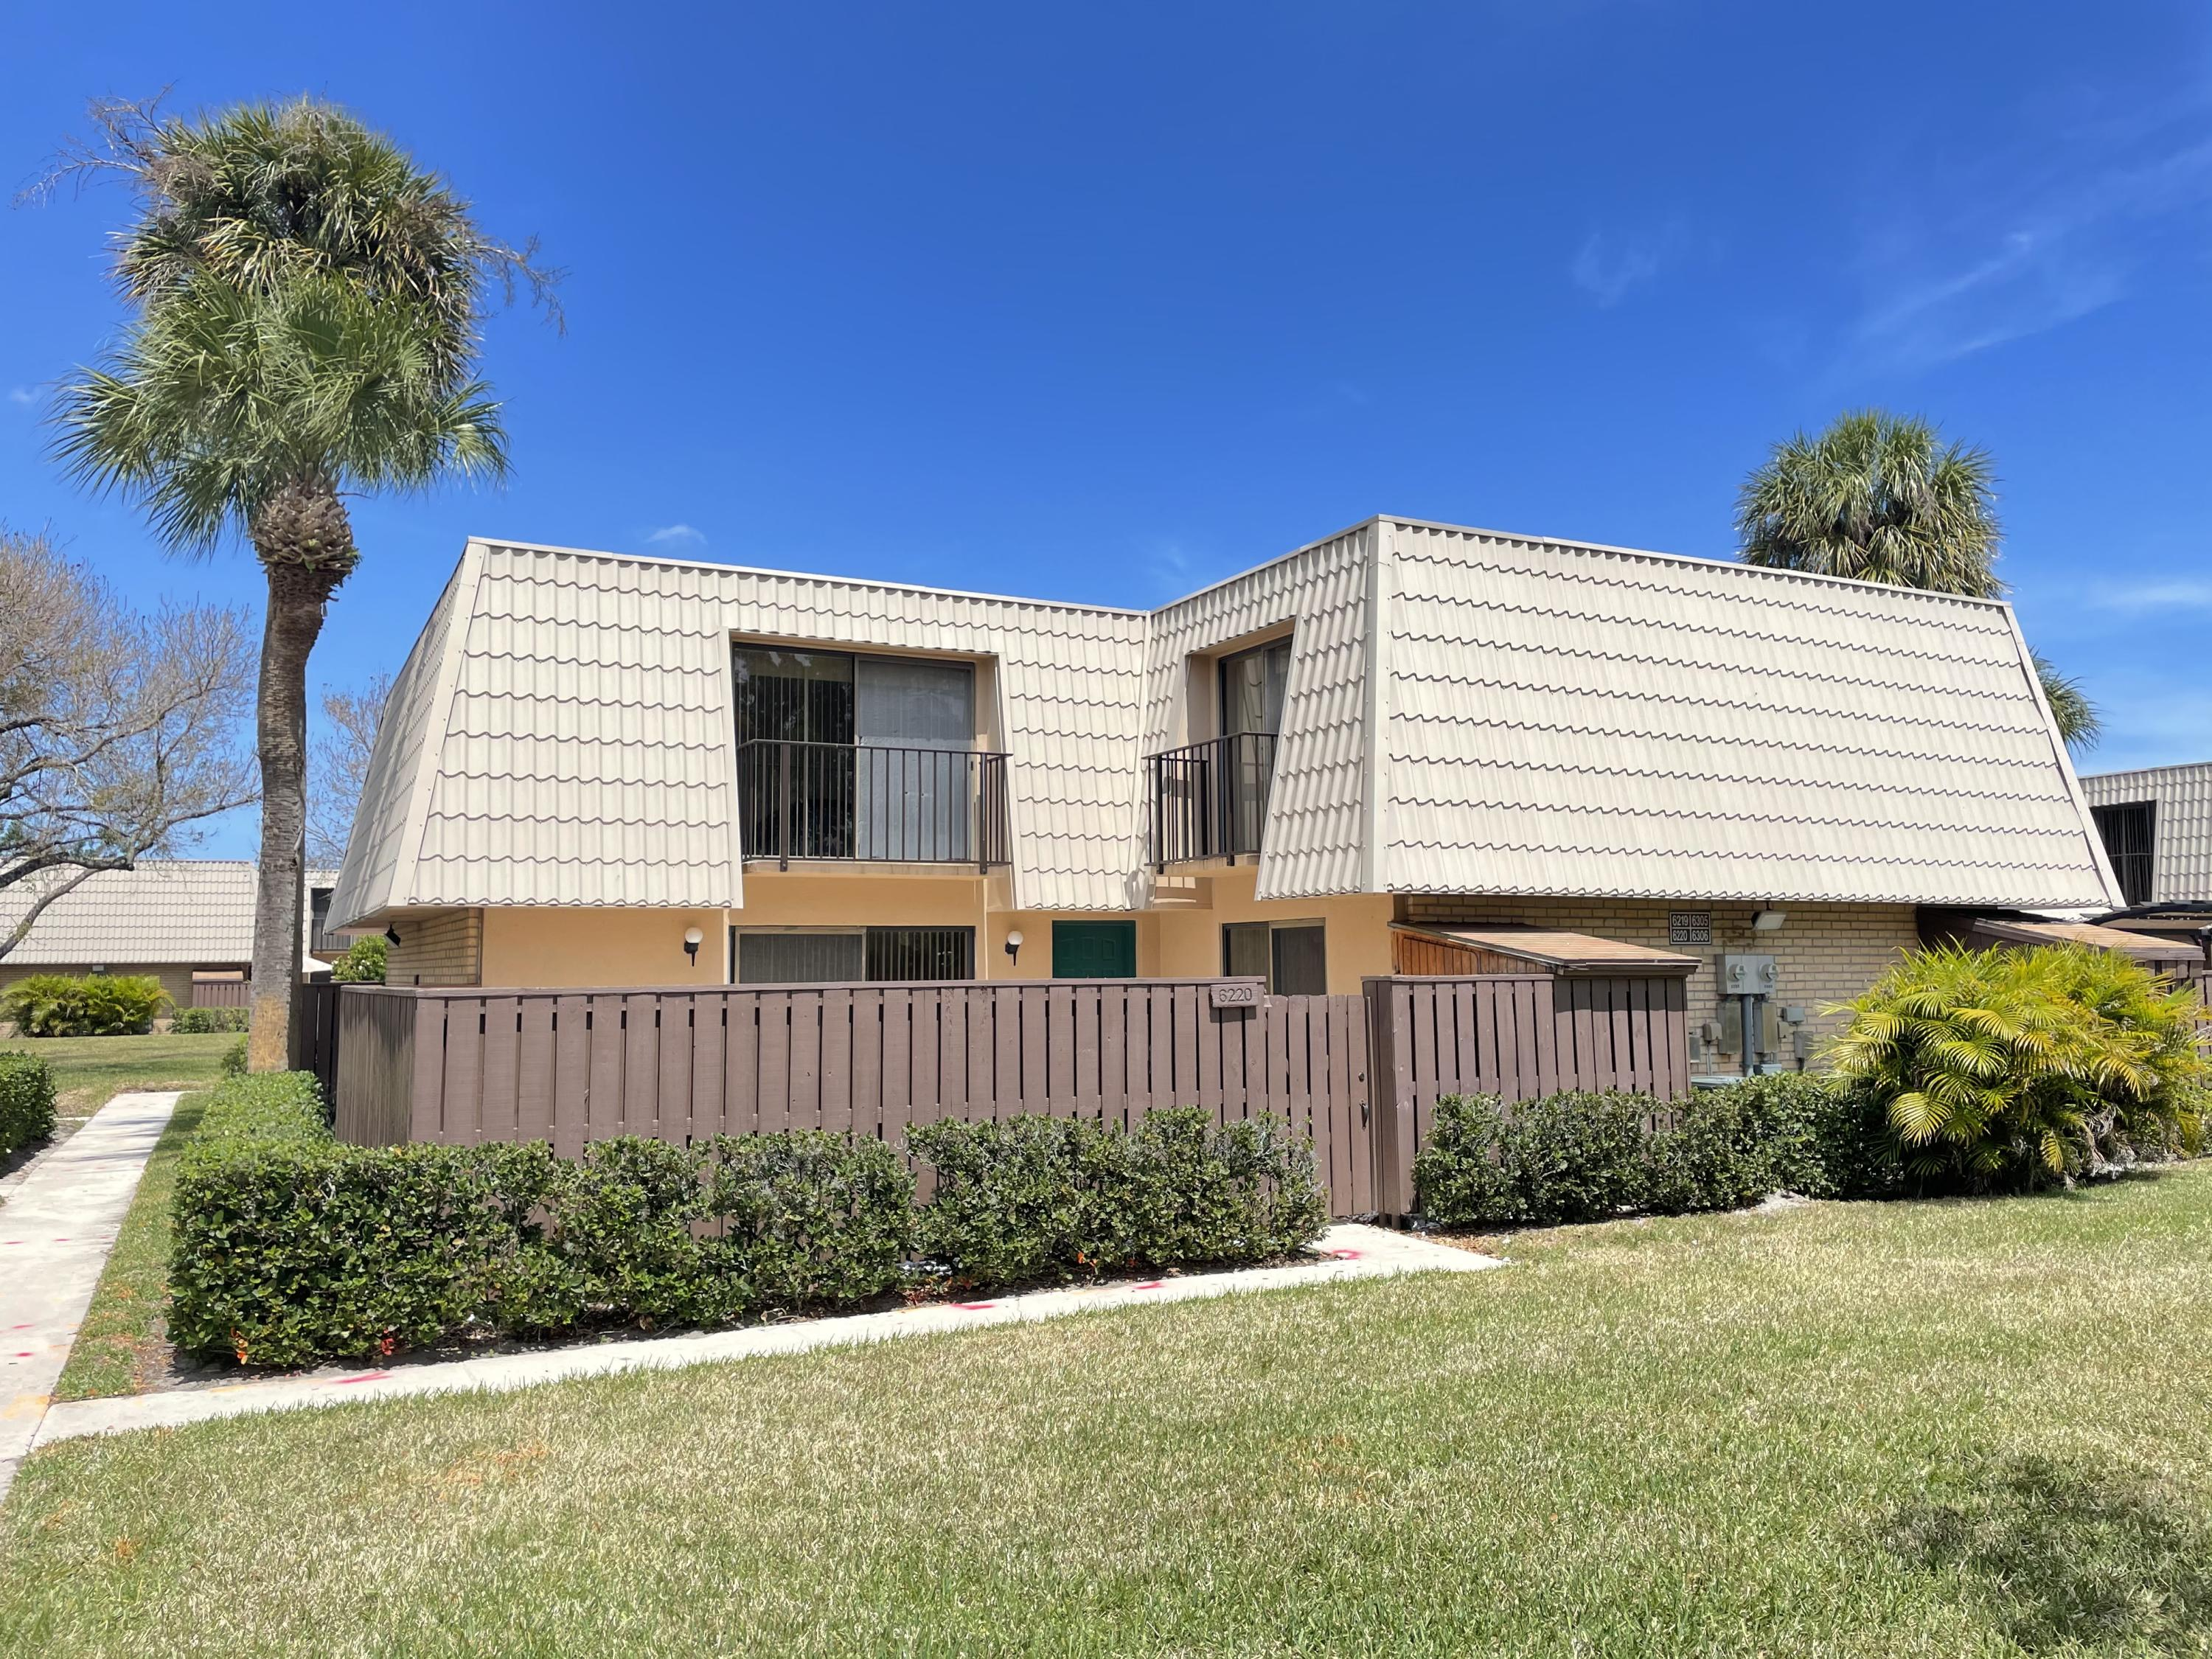 6220  62nd Way  For Sale 10706715, FL